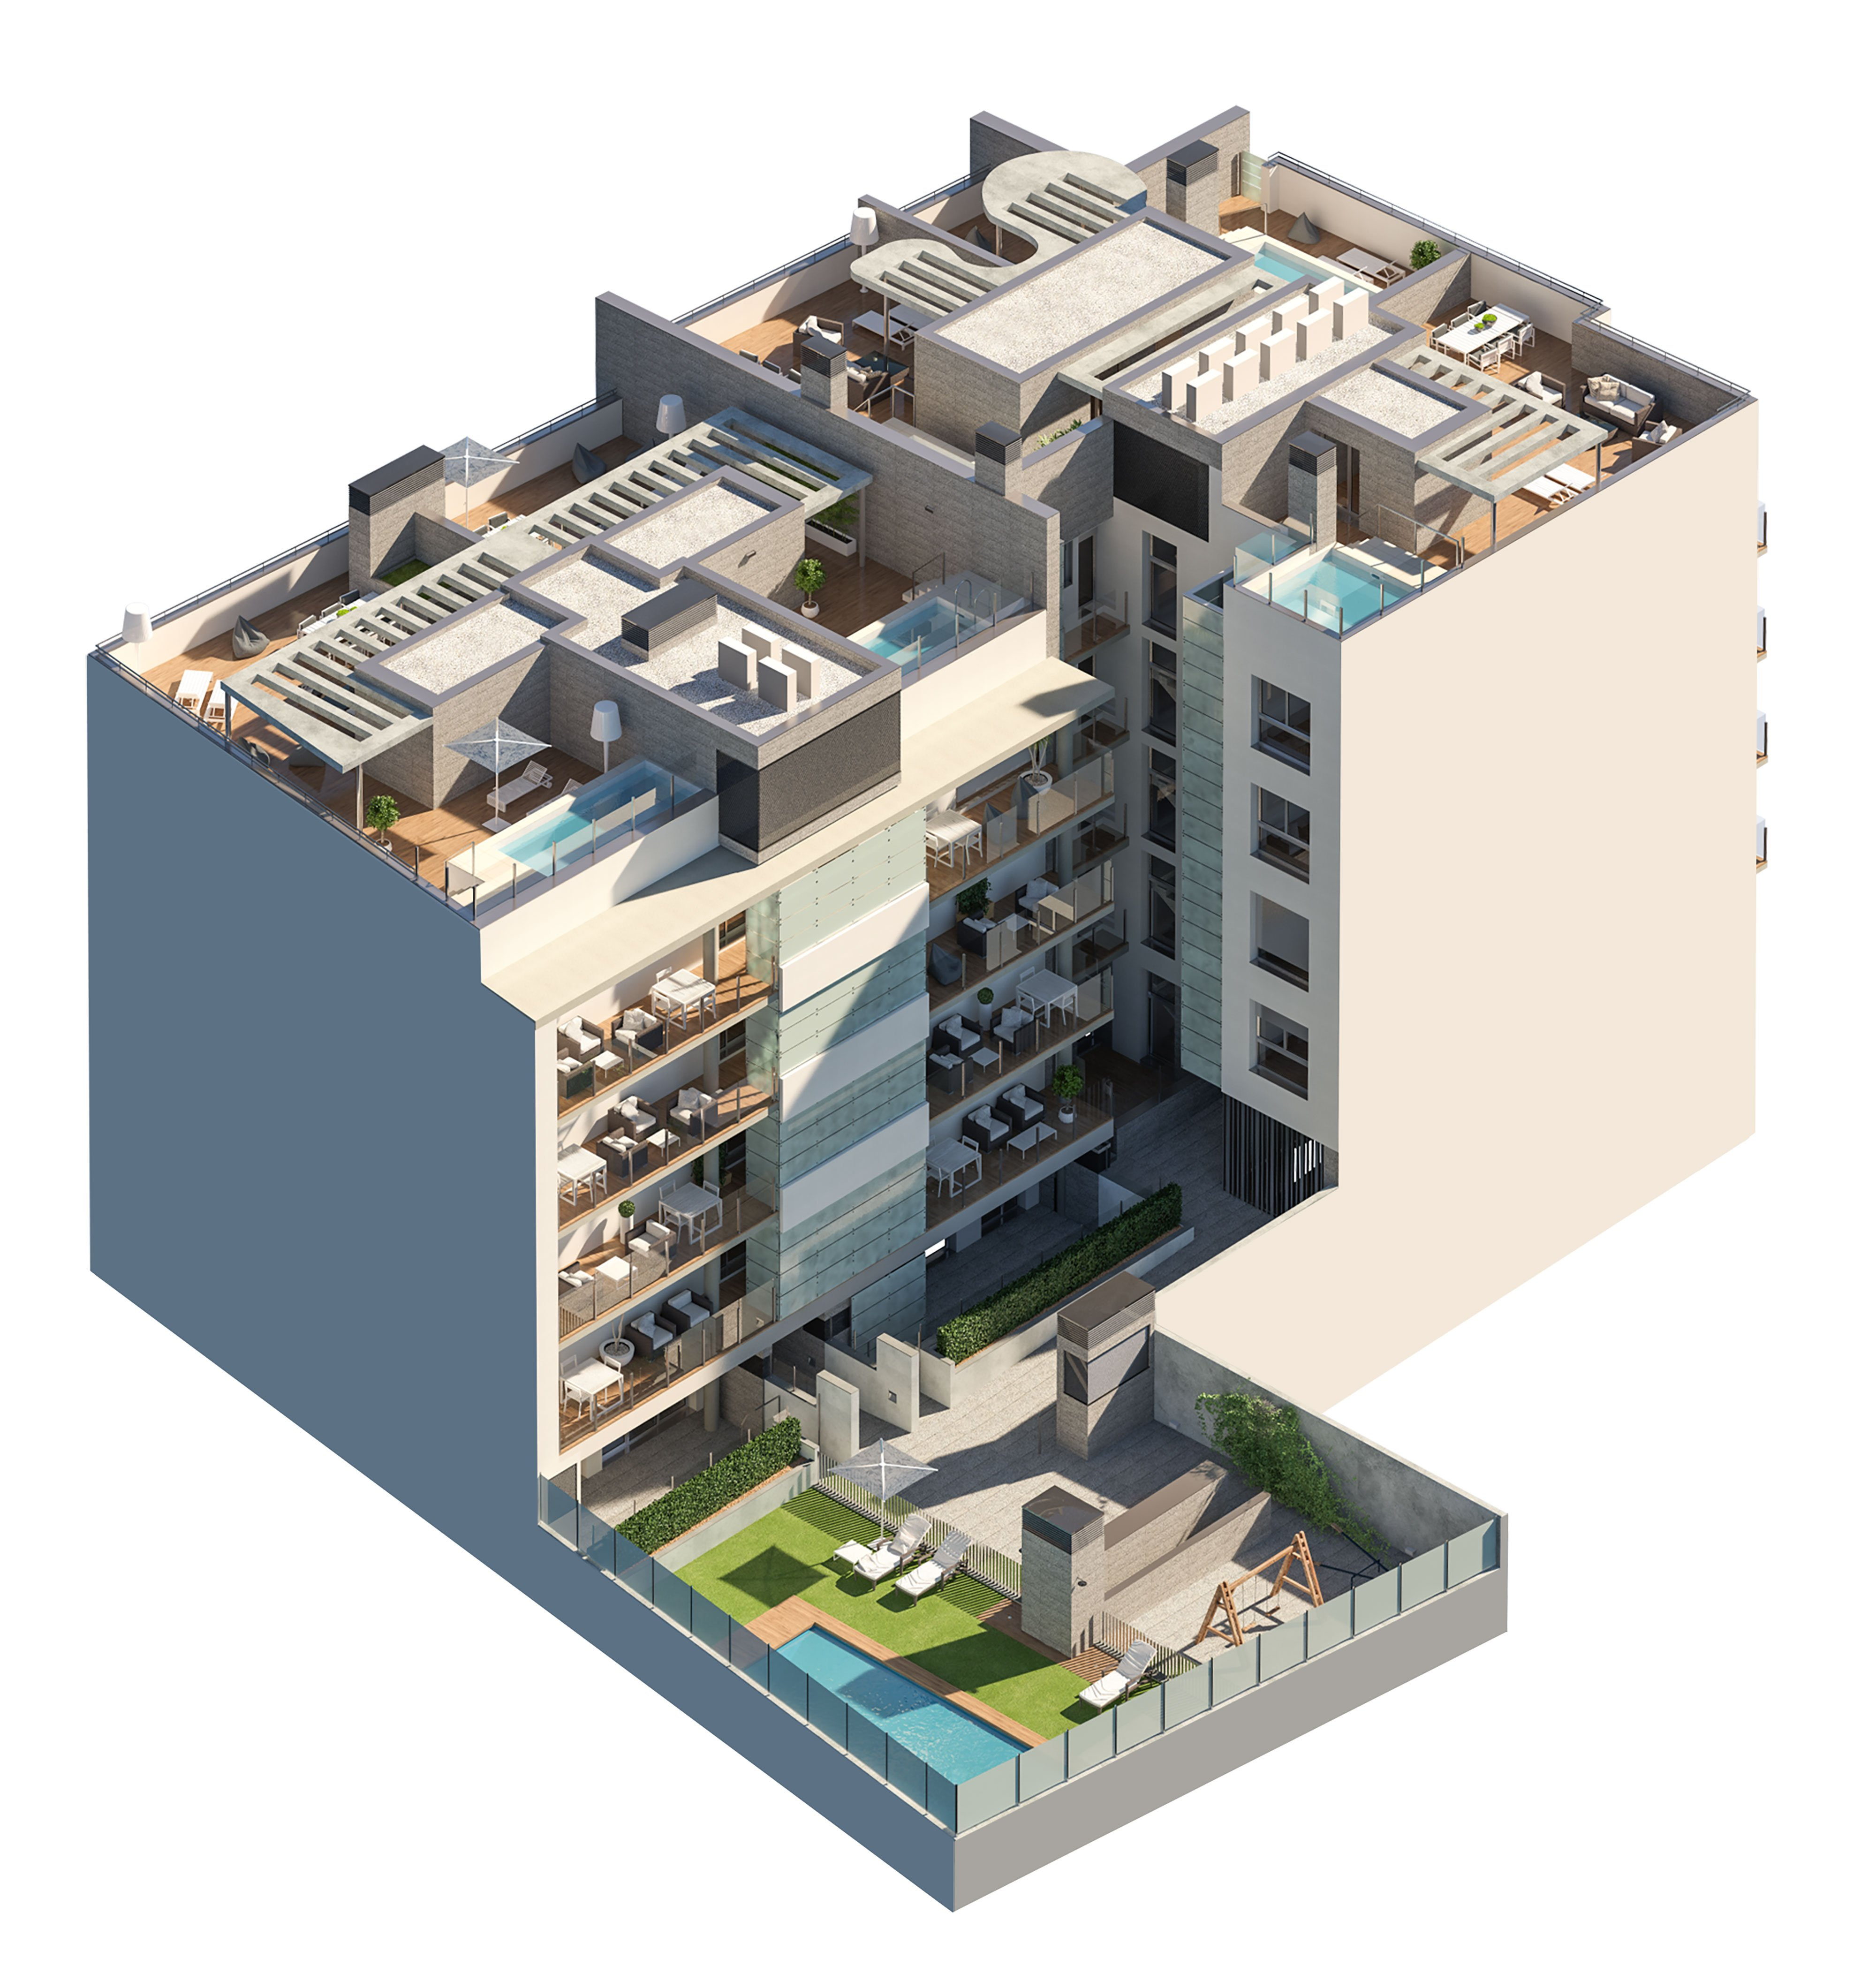 axonometric view of a block of flats by GAYARRE infografia